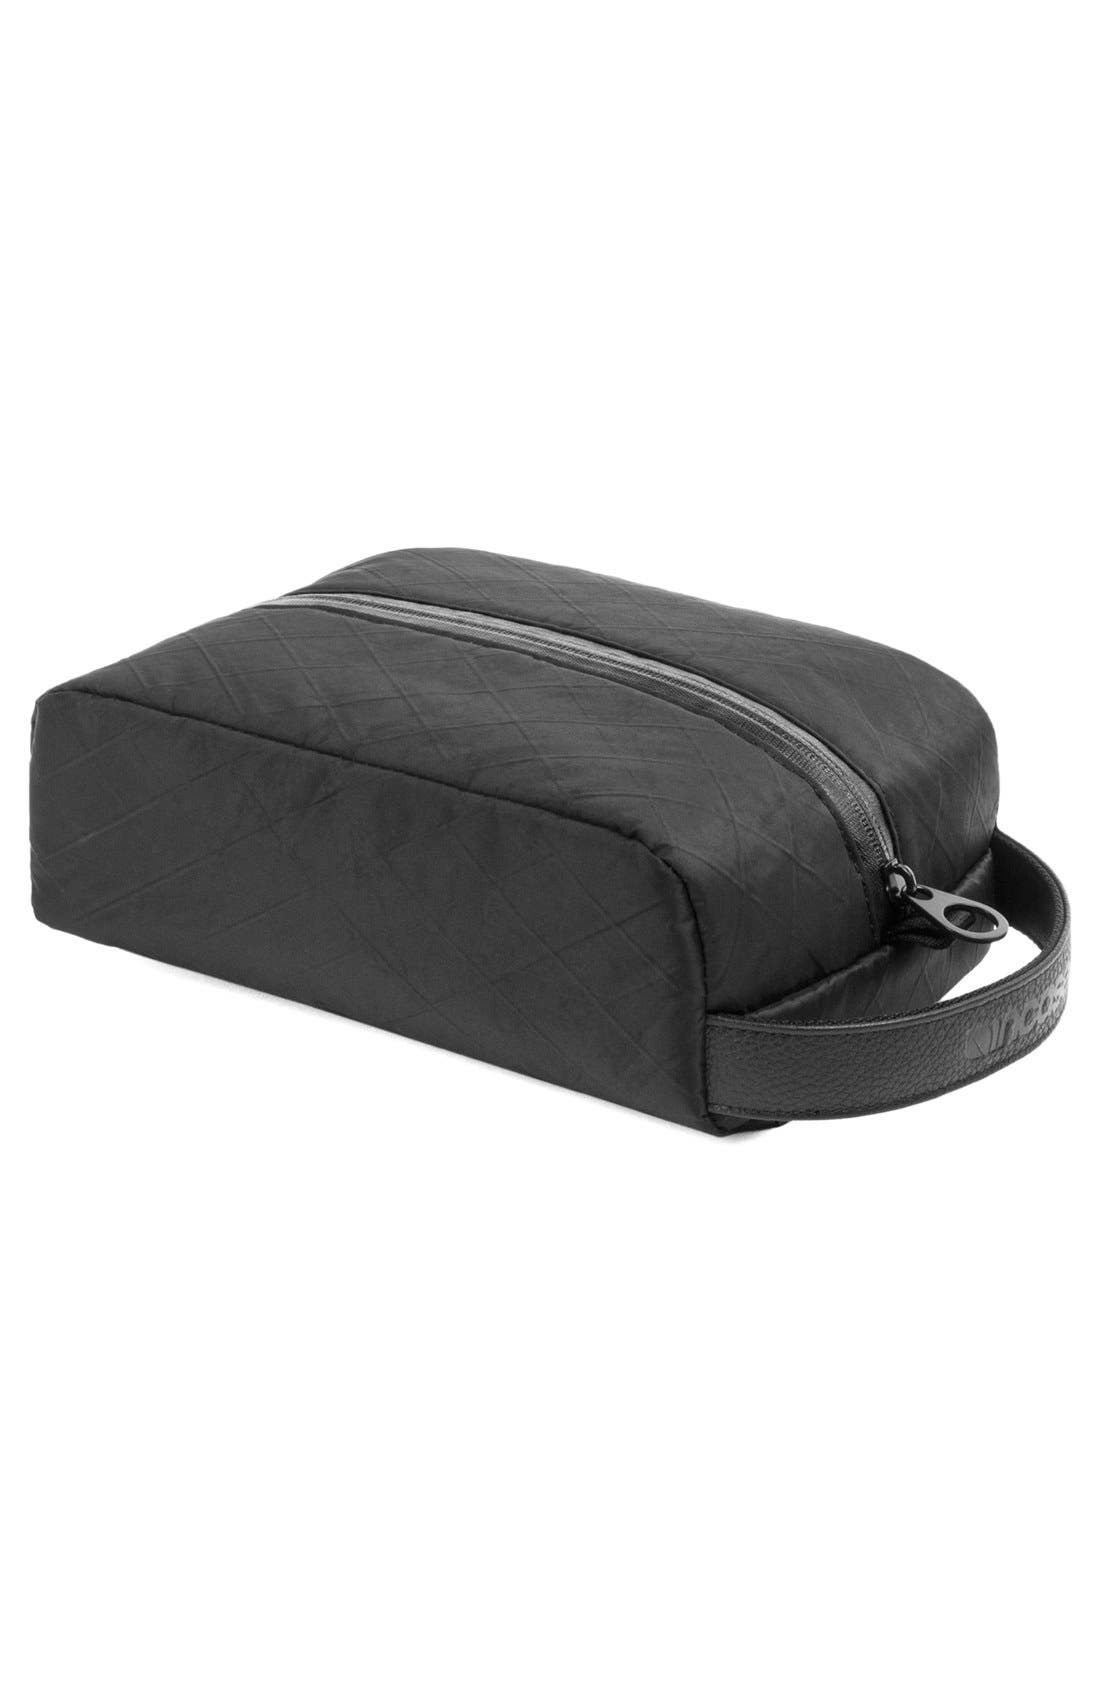 Diamond Wire Dopp Kit,                             Alternate thumbnail 12, color,                             Black